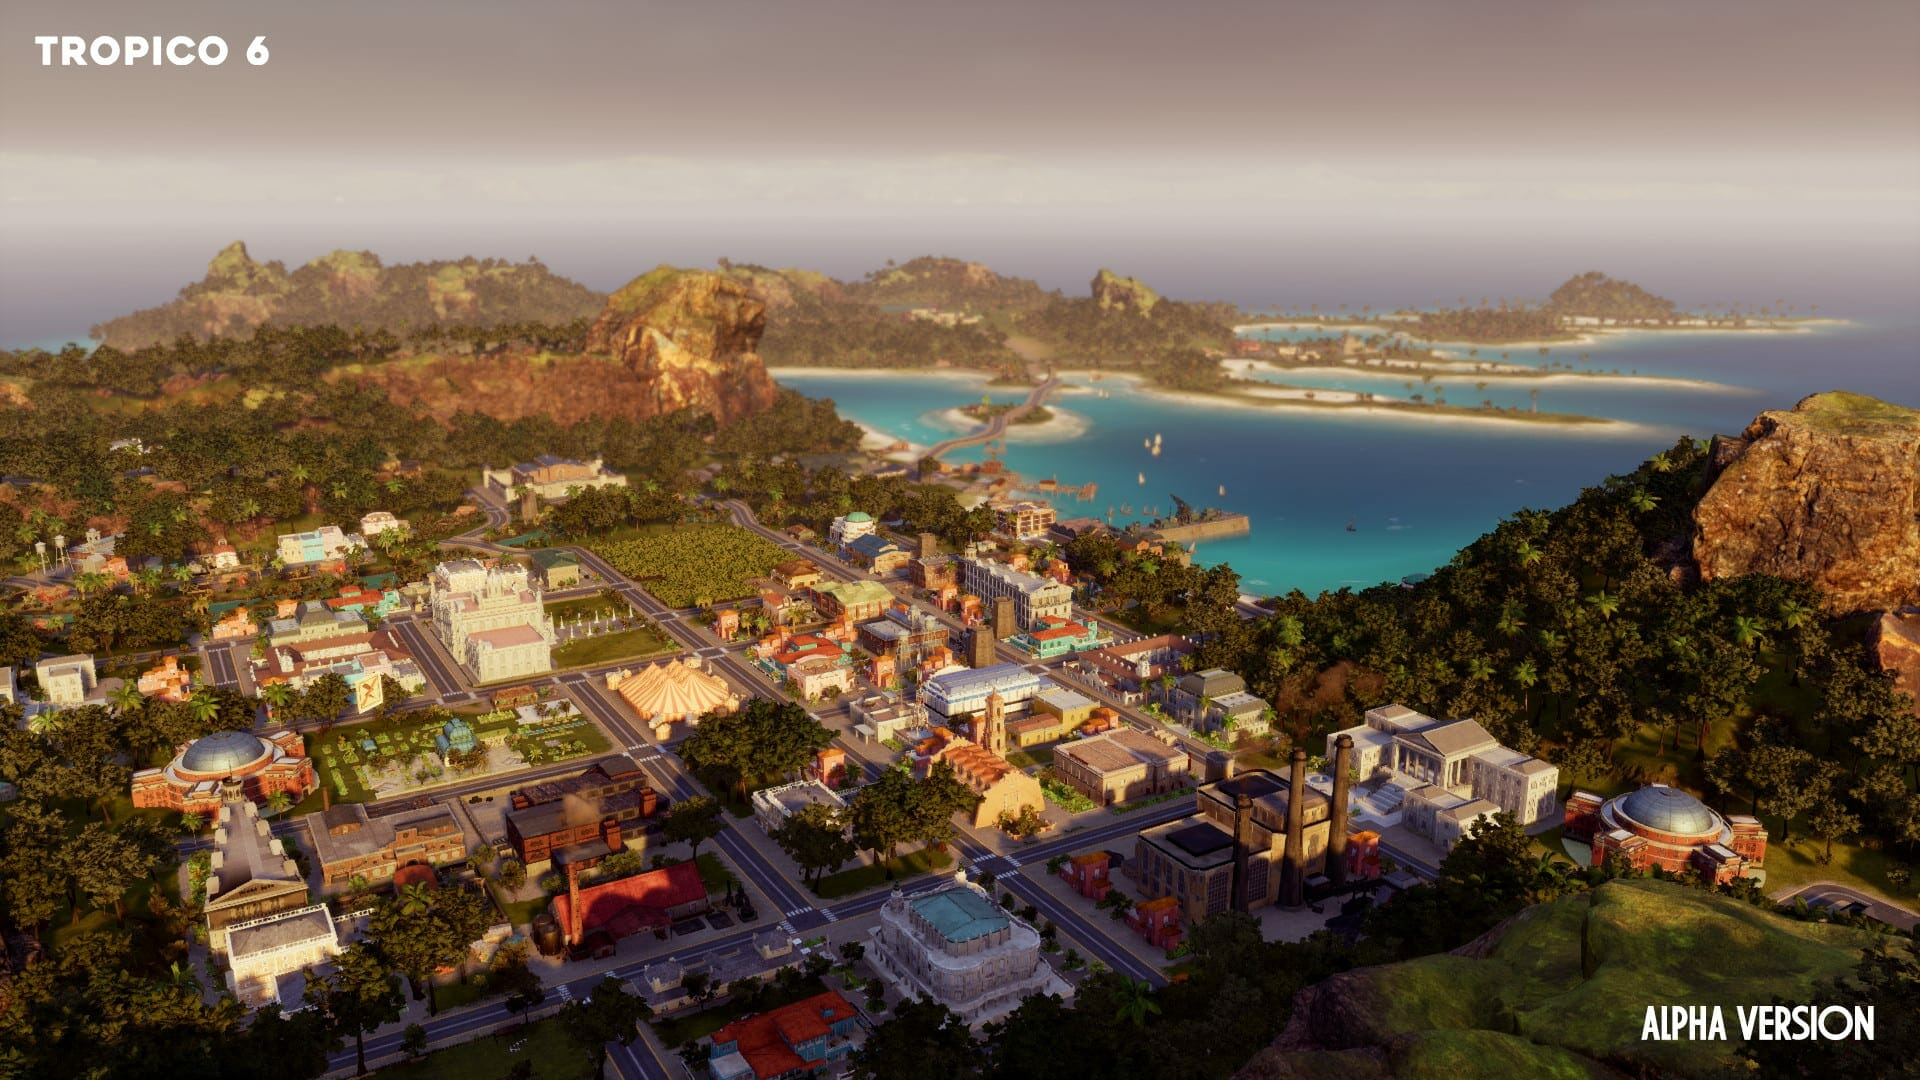 Tropico 6 Game - Tropico 6 Game Details and System Requirements